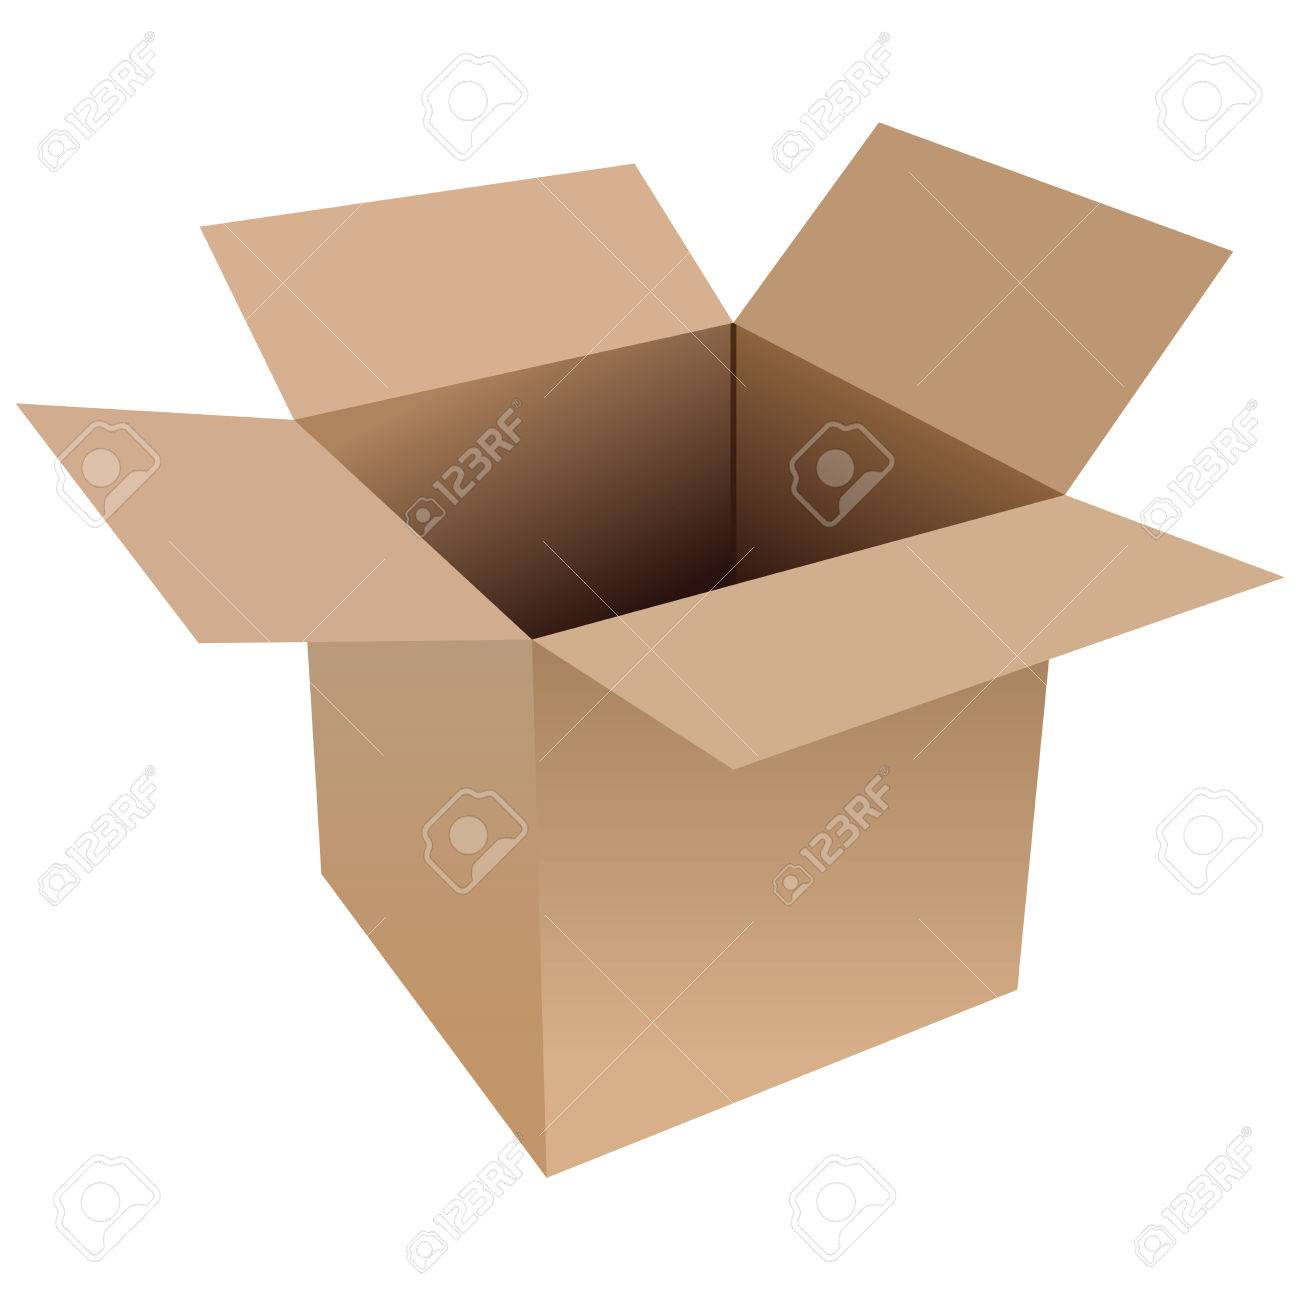 open cardboard box. illustration of an open cardboard box on a white background stock vector 6532562